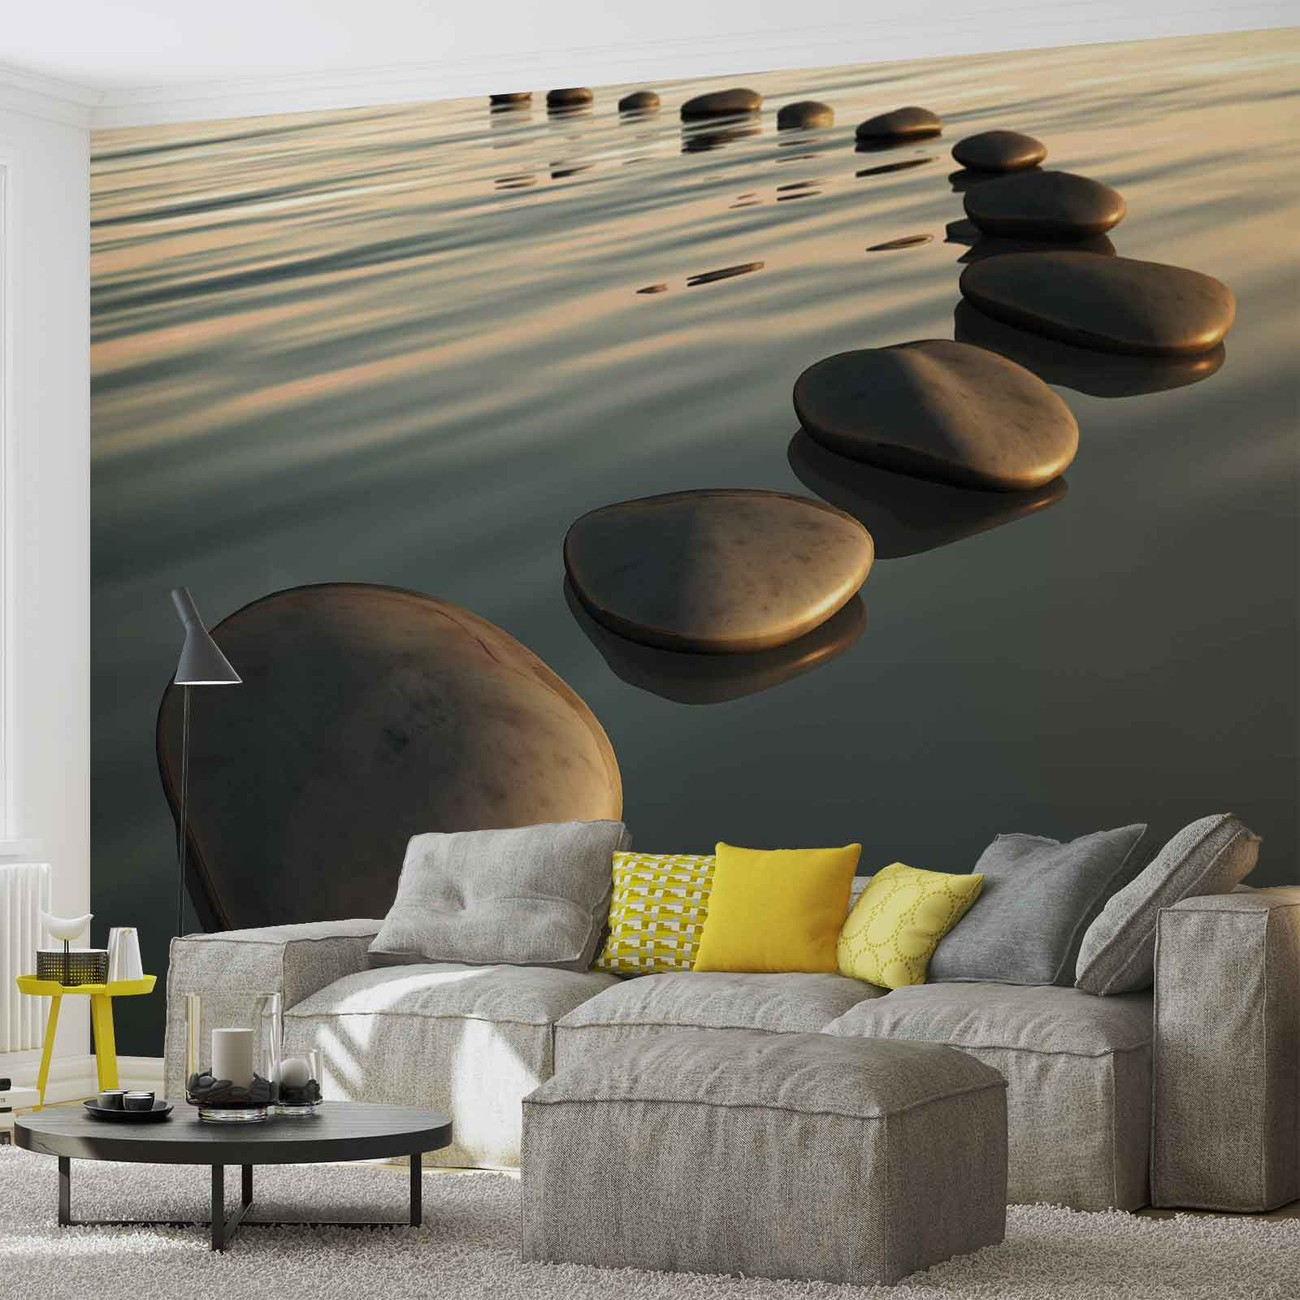 Stones ripples zen wall paper mural buy at europosters for Poster mural geant zen